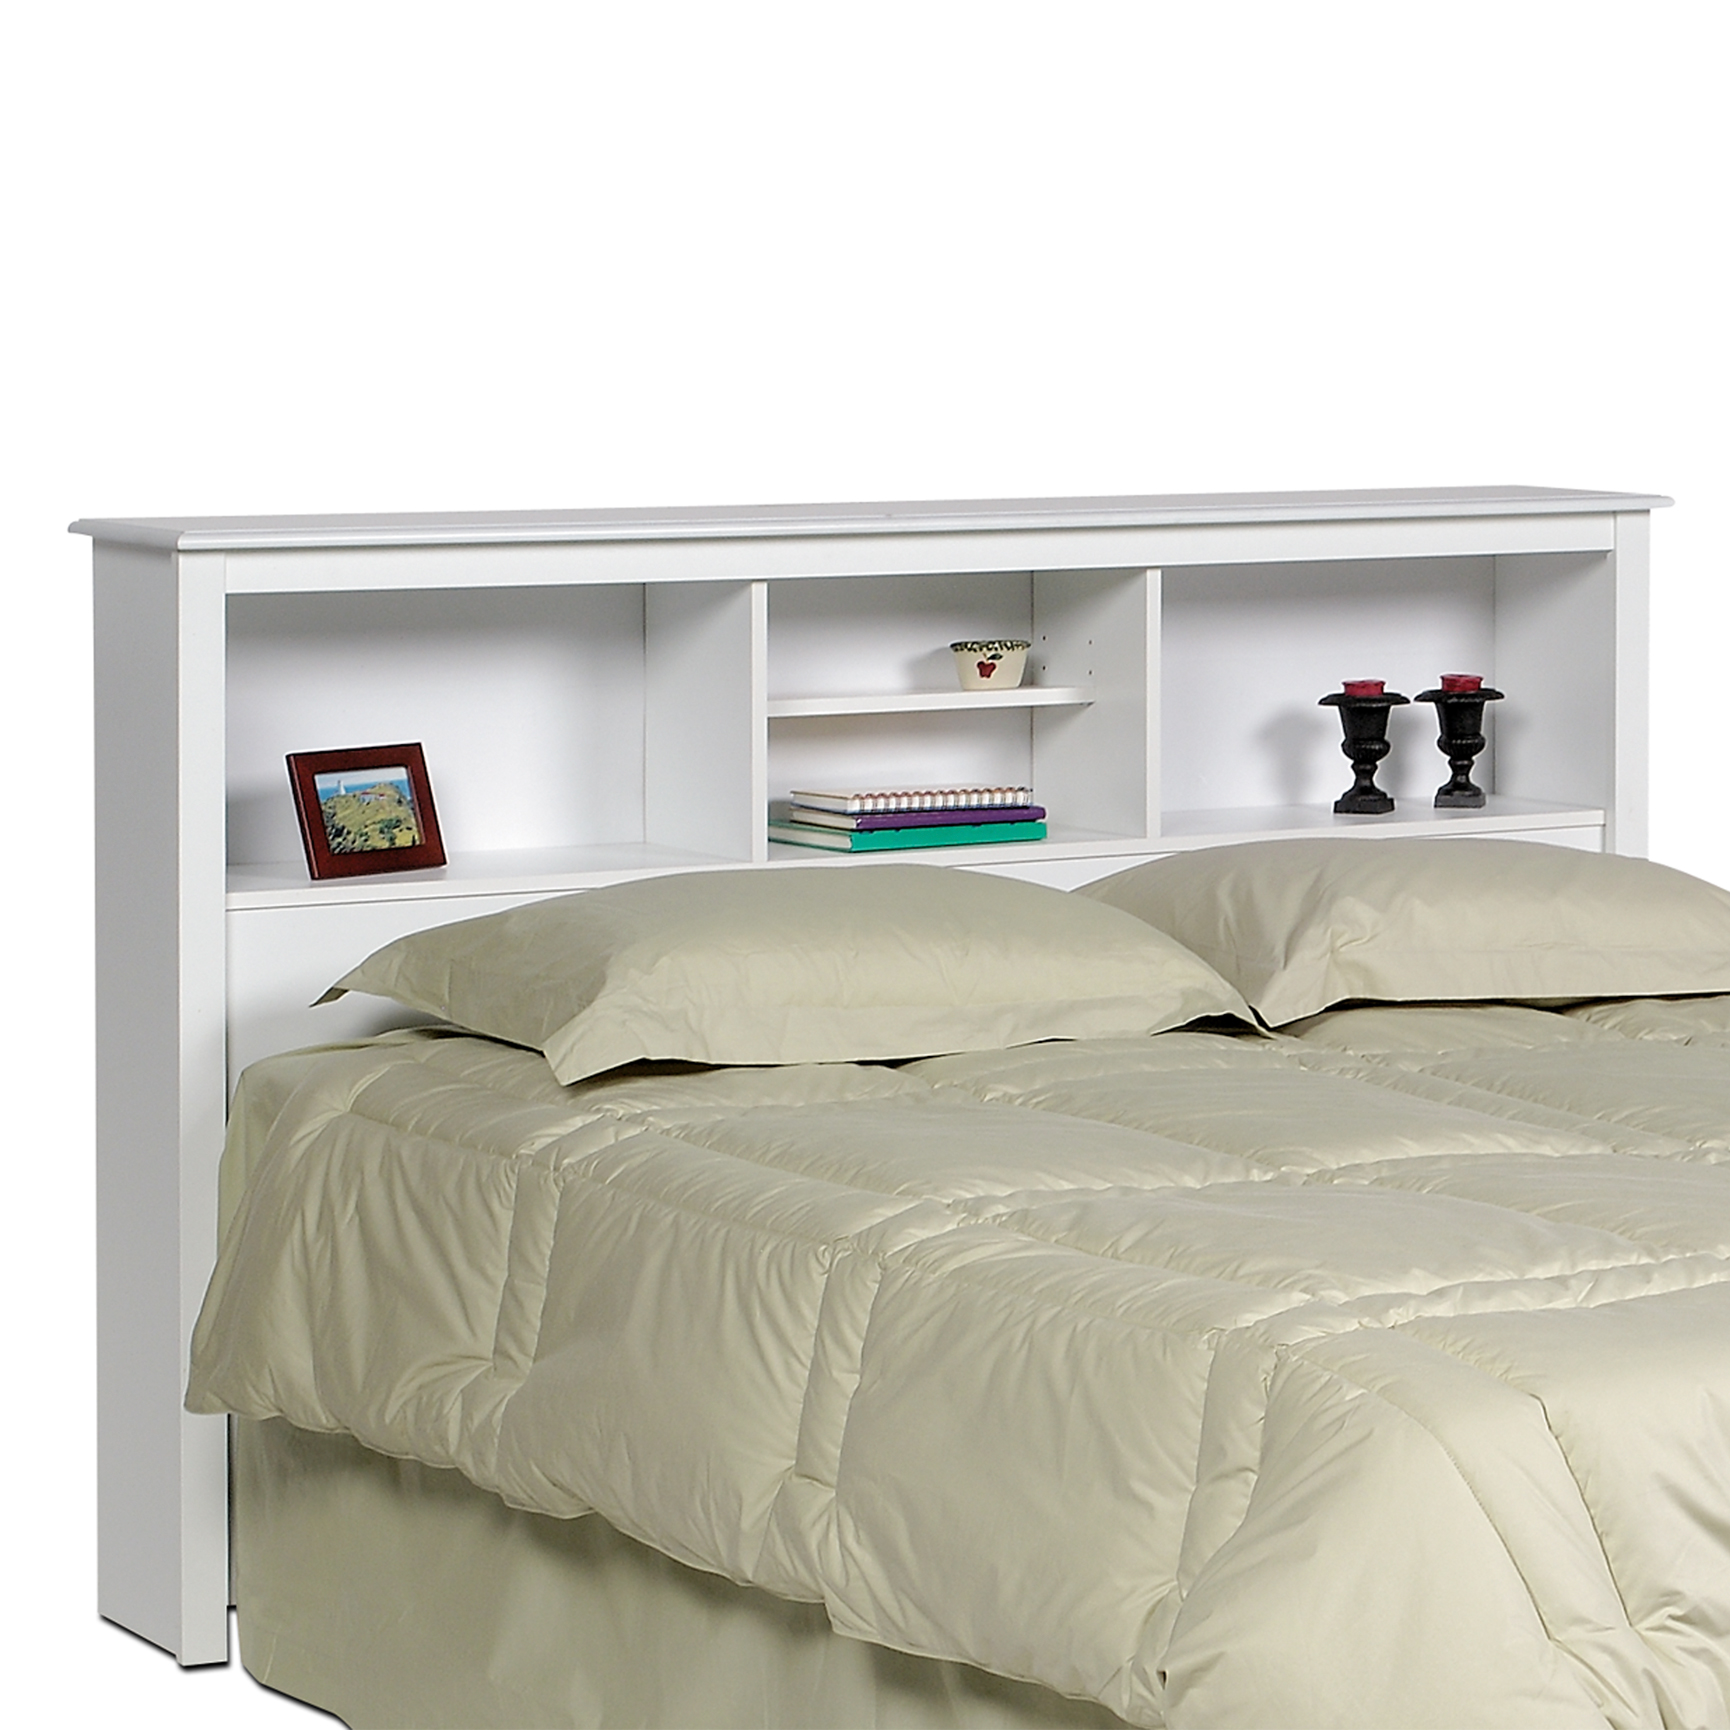 Bed Headboard Monterey White Double Queen Bookcase Headboard